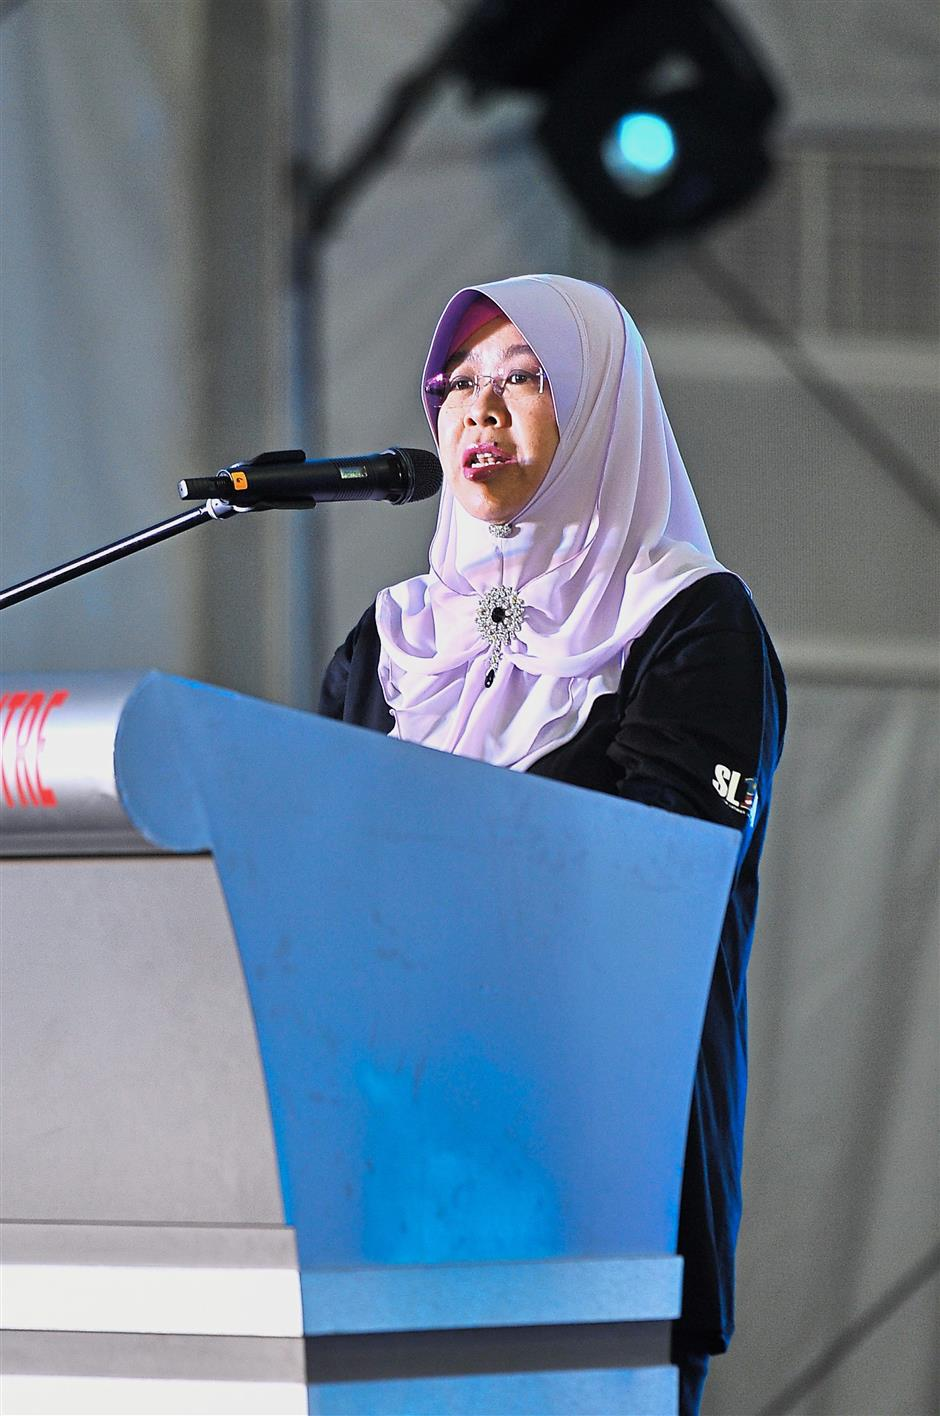 Reaching to more: Norashikin hopes to help more than 25,000 graduates this year and also ensure they get a good job to support their families.